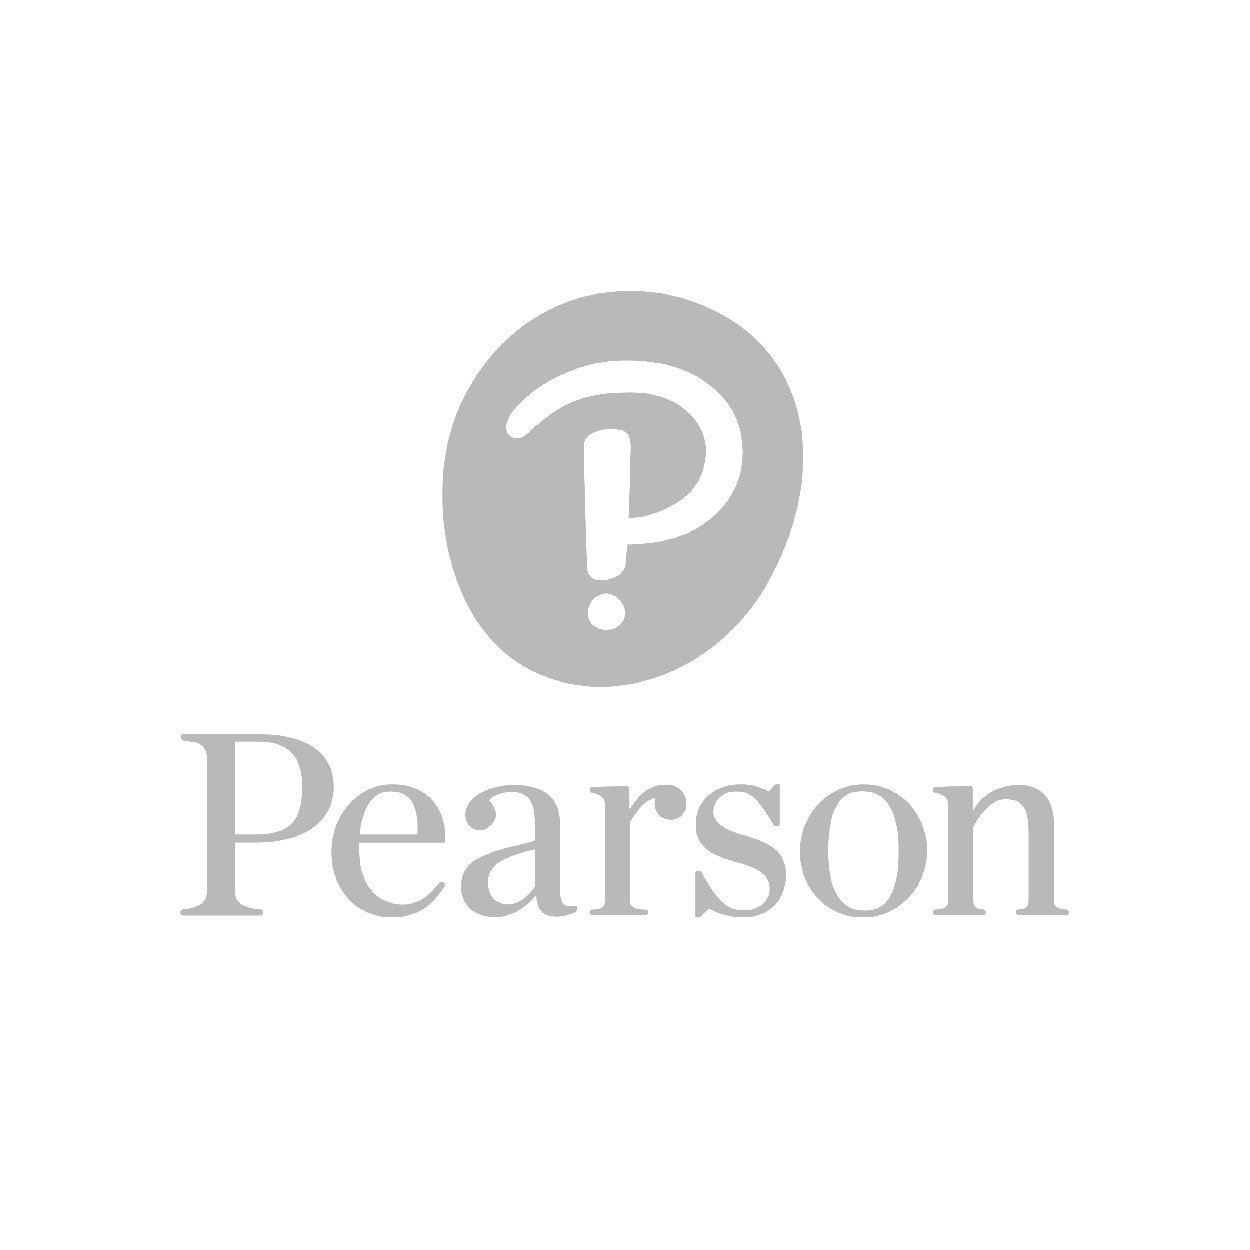 Pearson Logo for Homepage (Grayscale).png